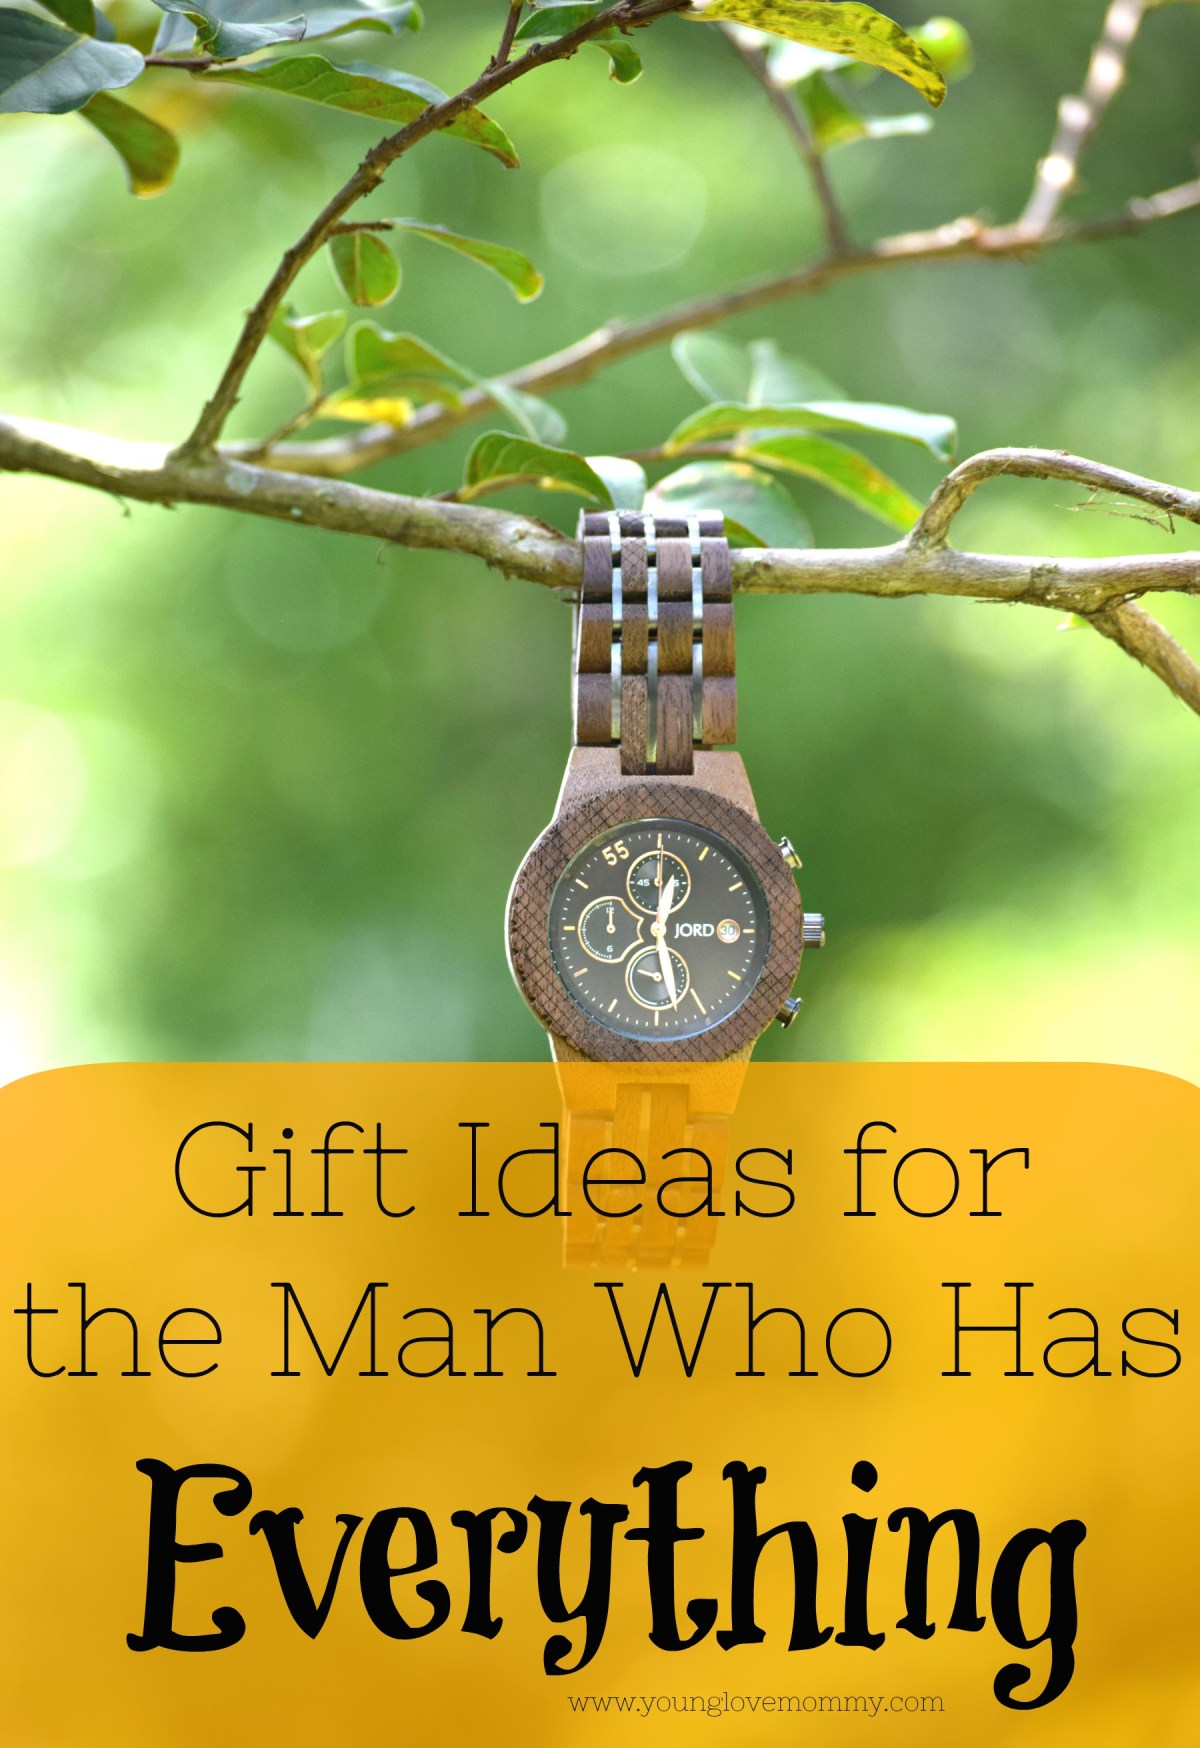 Unique Gift Ideas for the Man that Has Everything